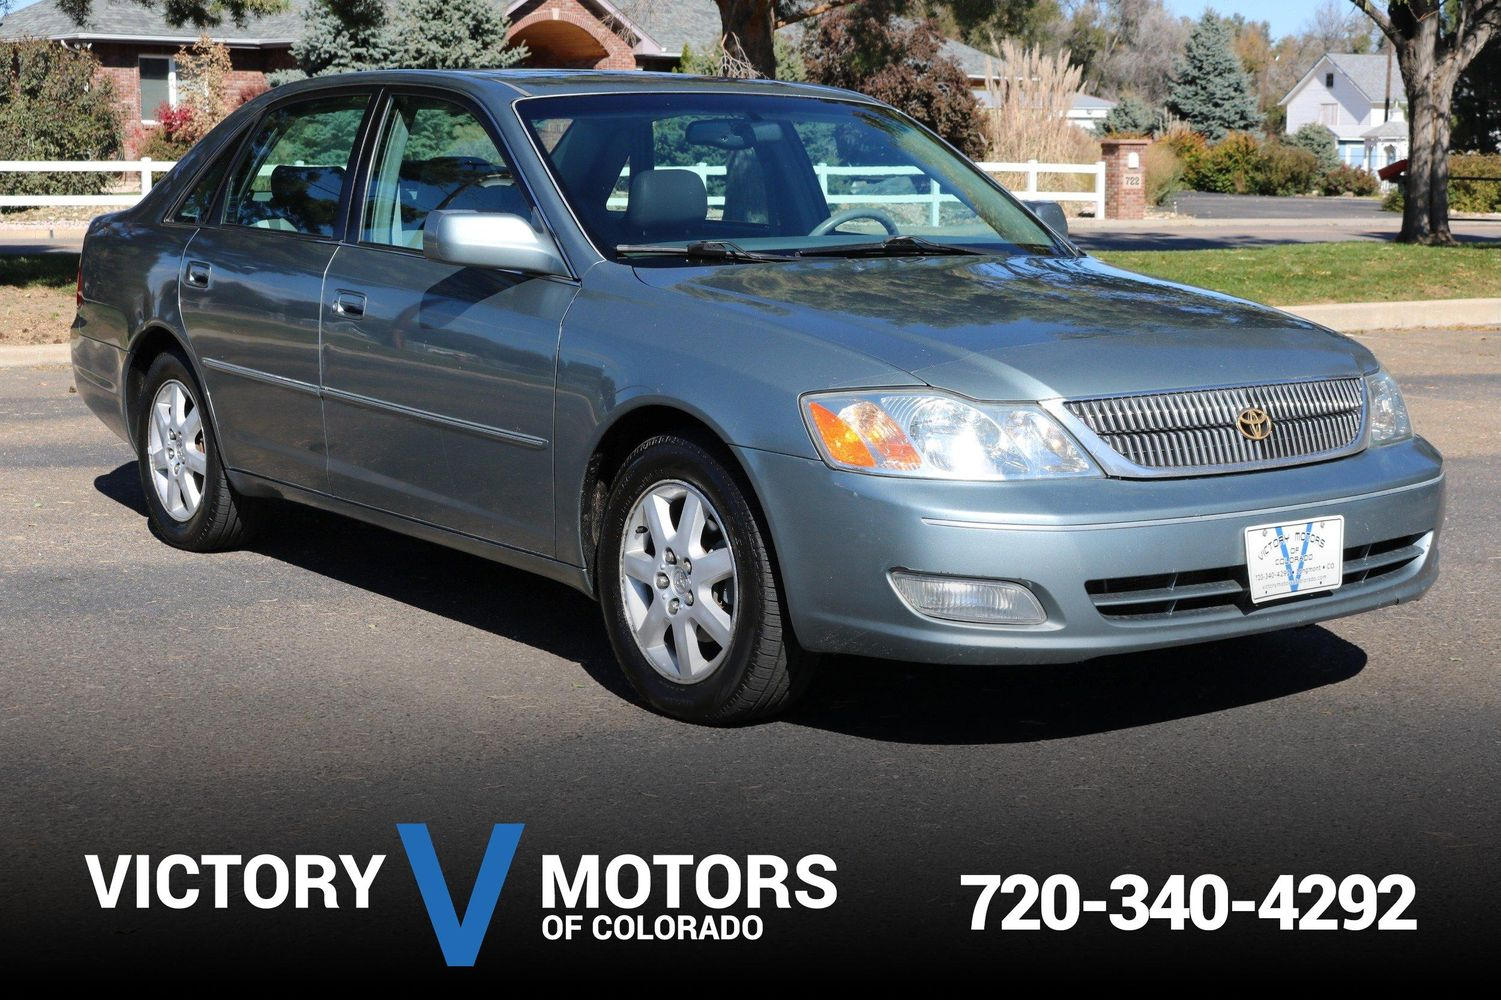 2000 toyota avalon xls victory motors of colorado 2000 toyota avalon xls victory motors